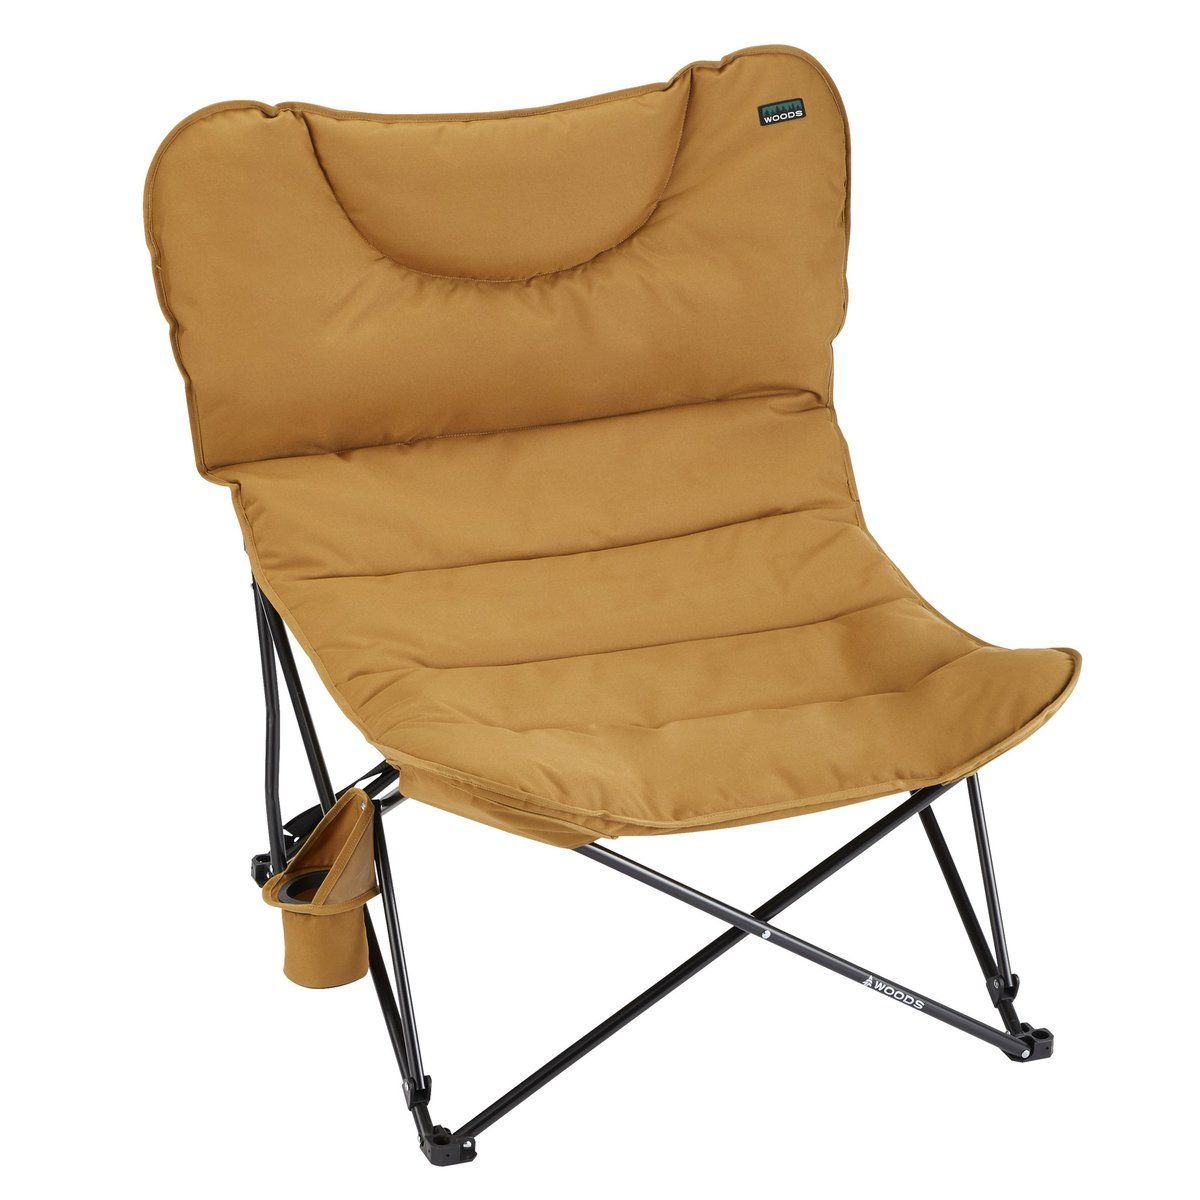 Woods Mammoth Folding Padded Camping Chair Camping